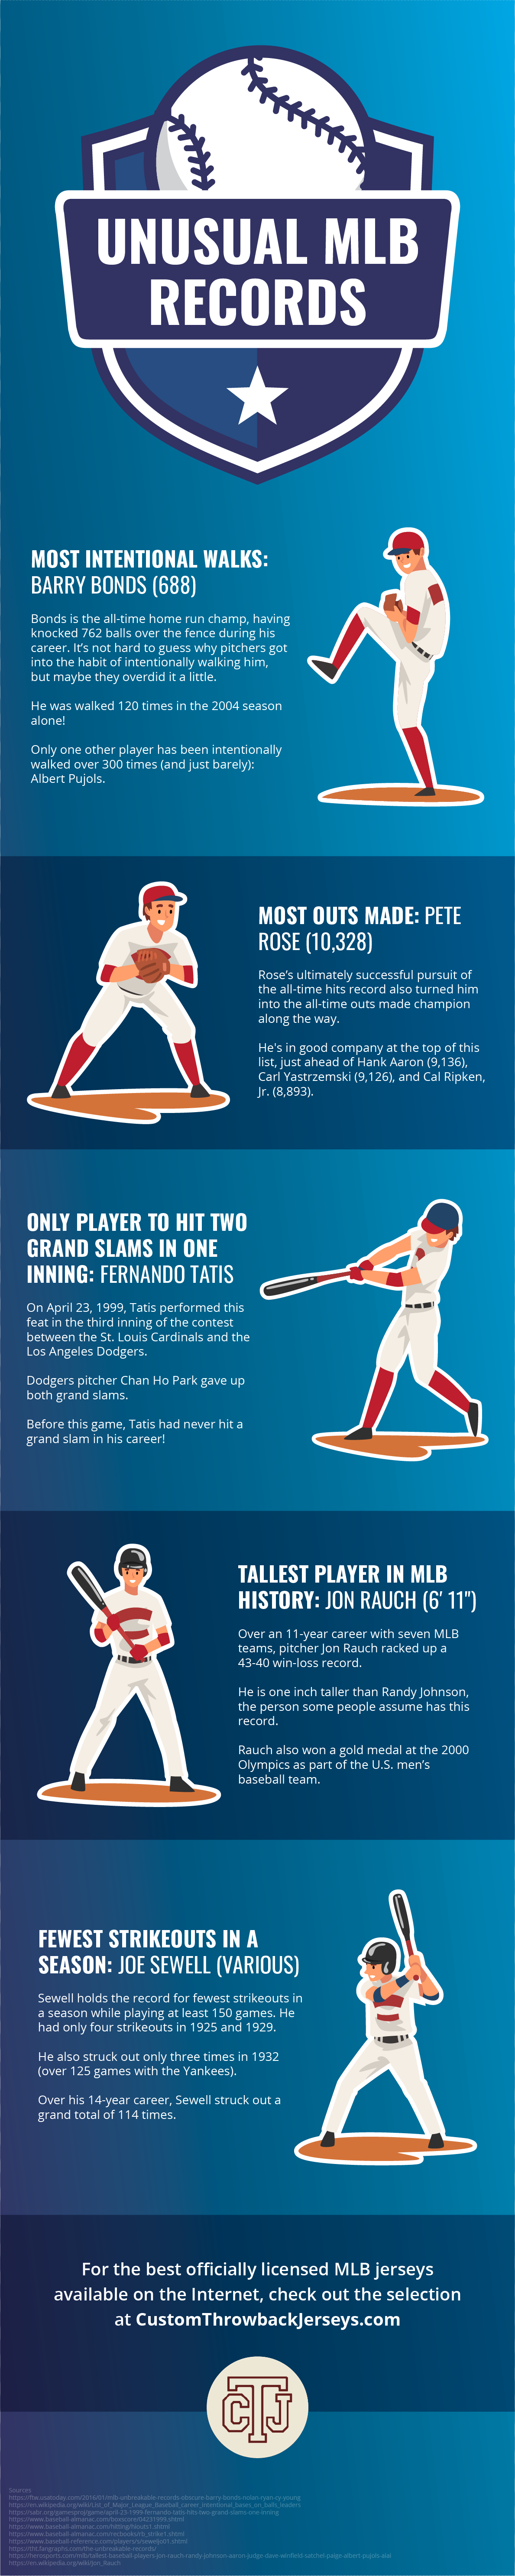 Unusual MLB Records Infographic